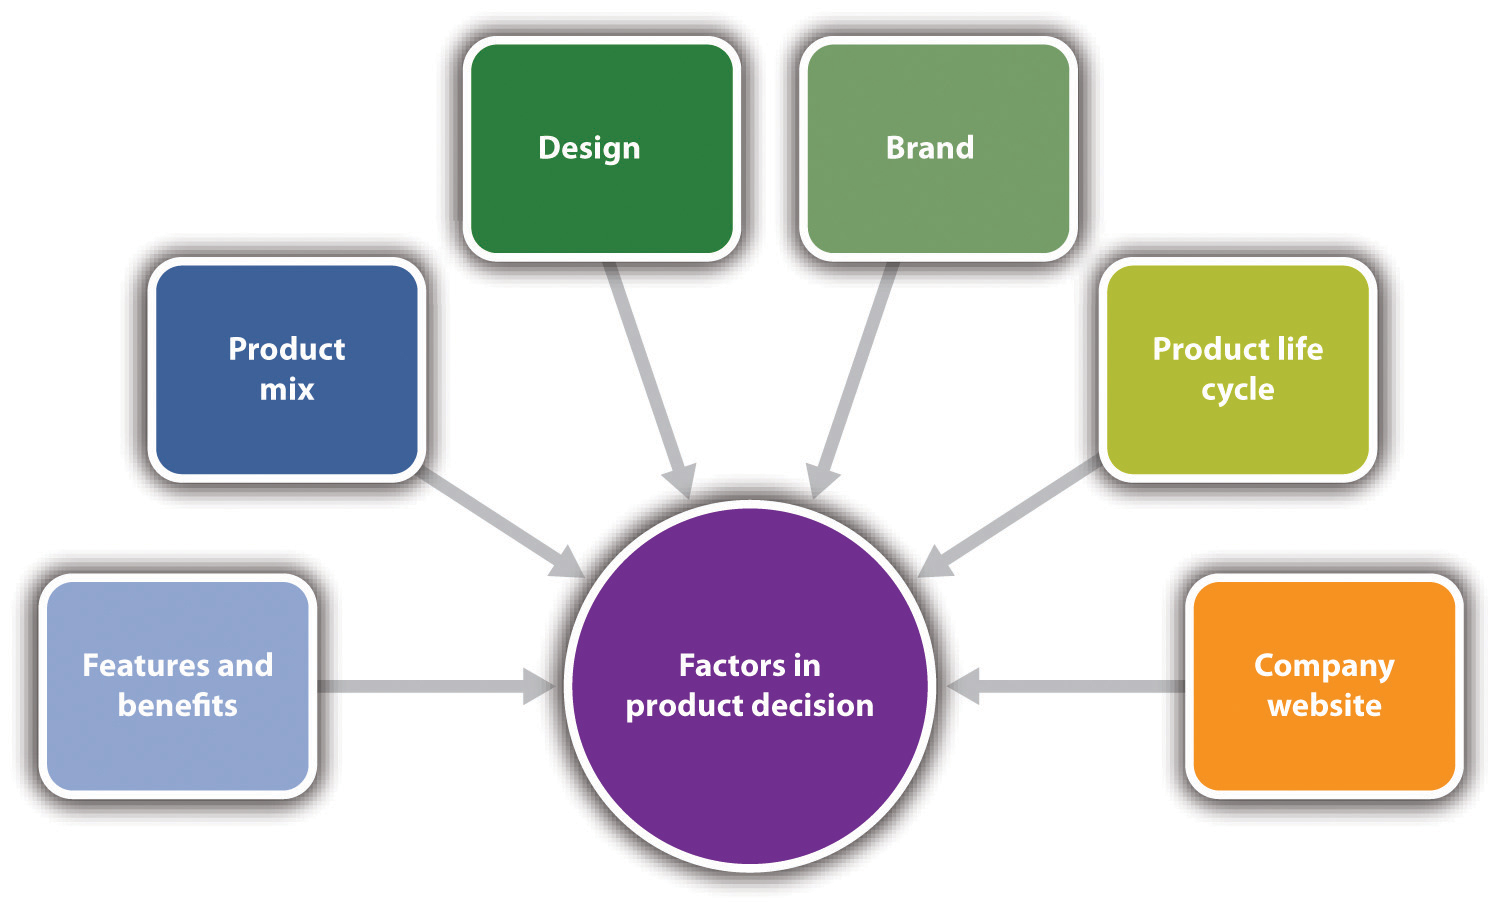 Marketing strategy and product for Product service design